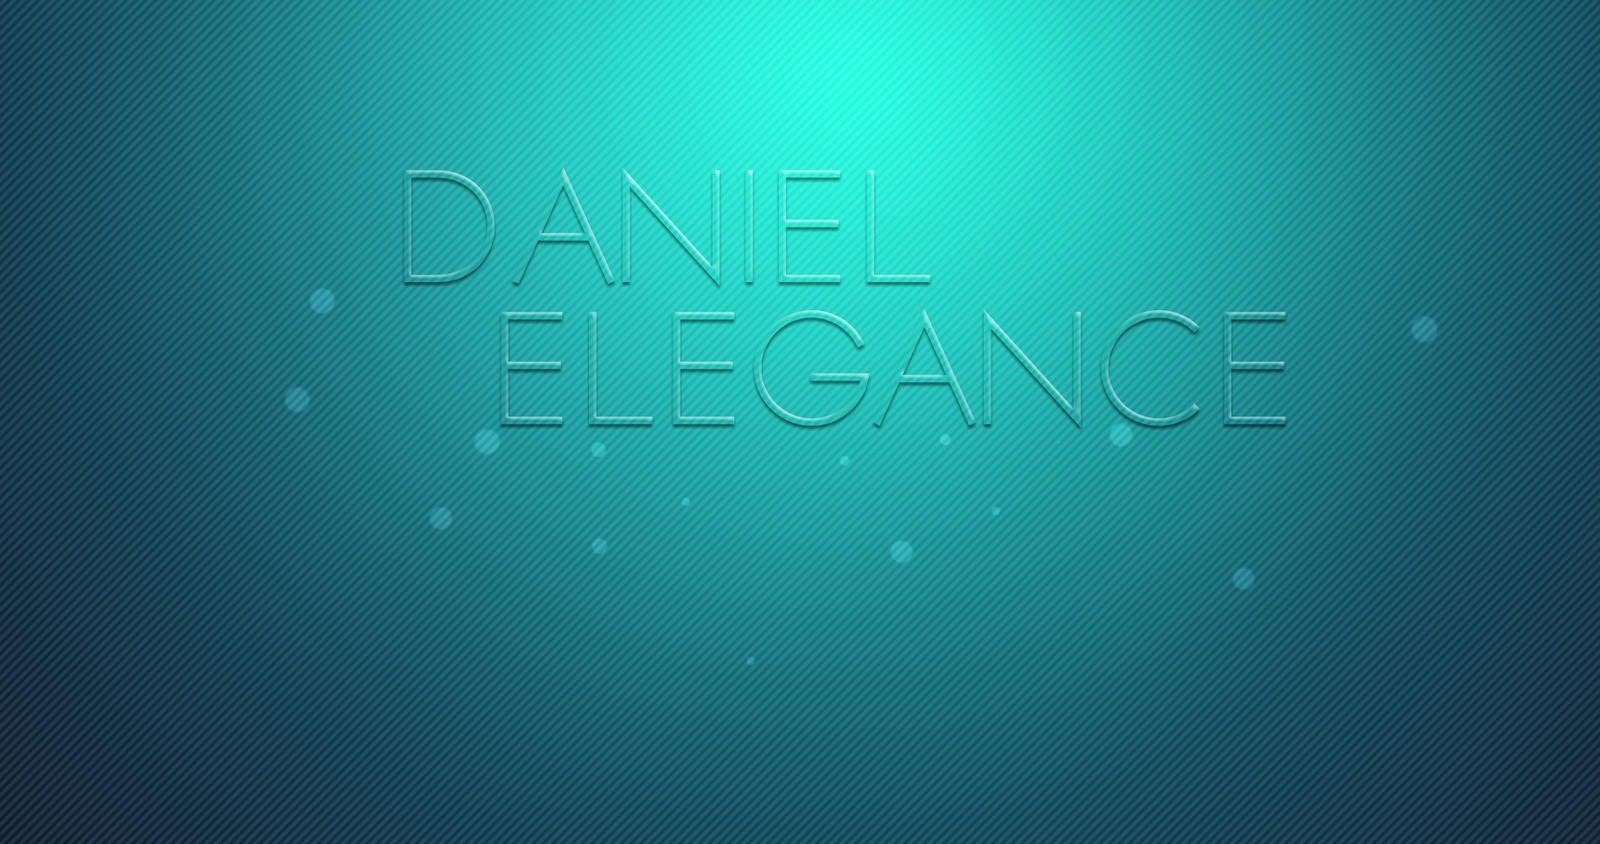 Simple and elegant wallpaper by danielowy on deviantart for Simple elegant wallpaper